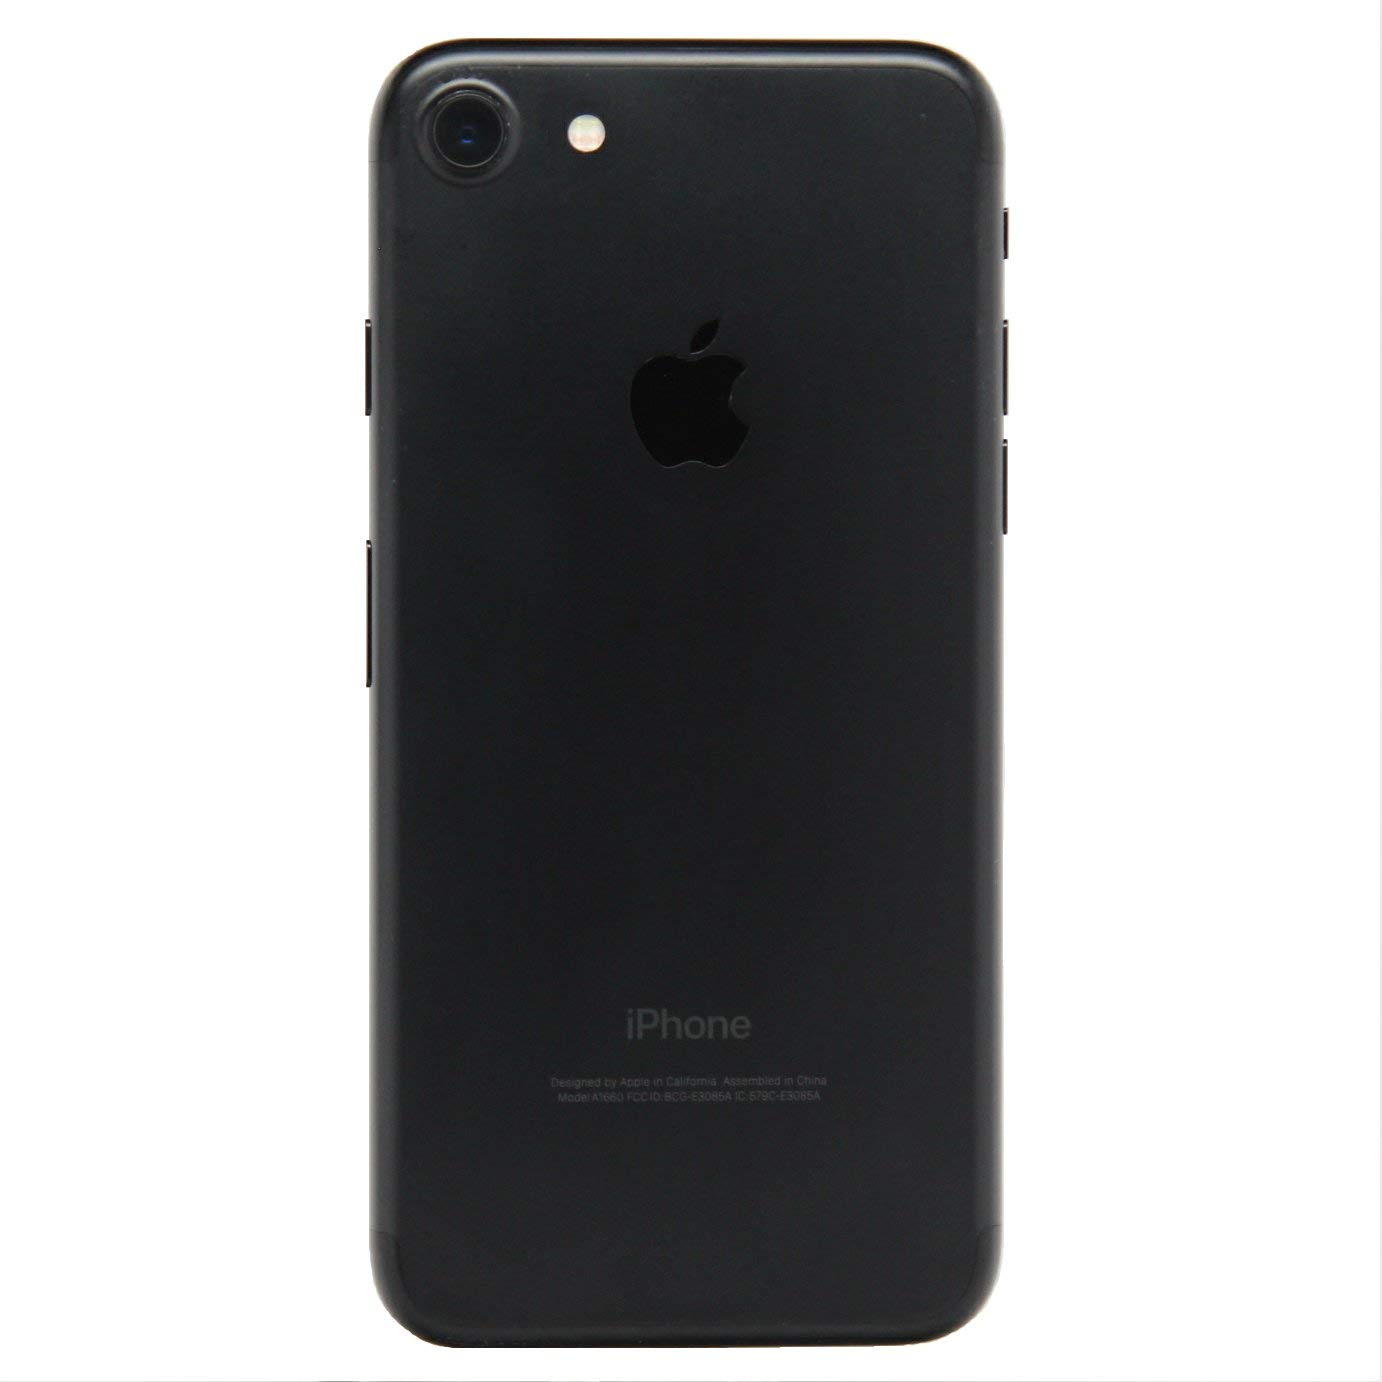 Apple Iphone 7 - 32gb - Desbloqueado(Refurbished)